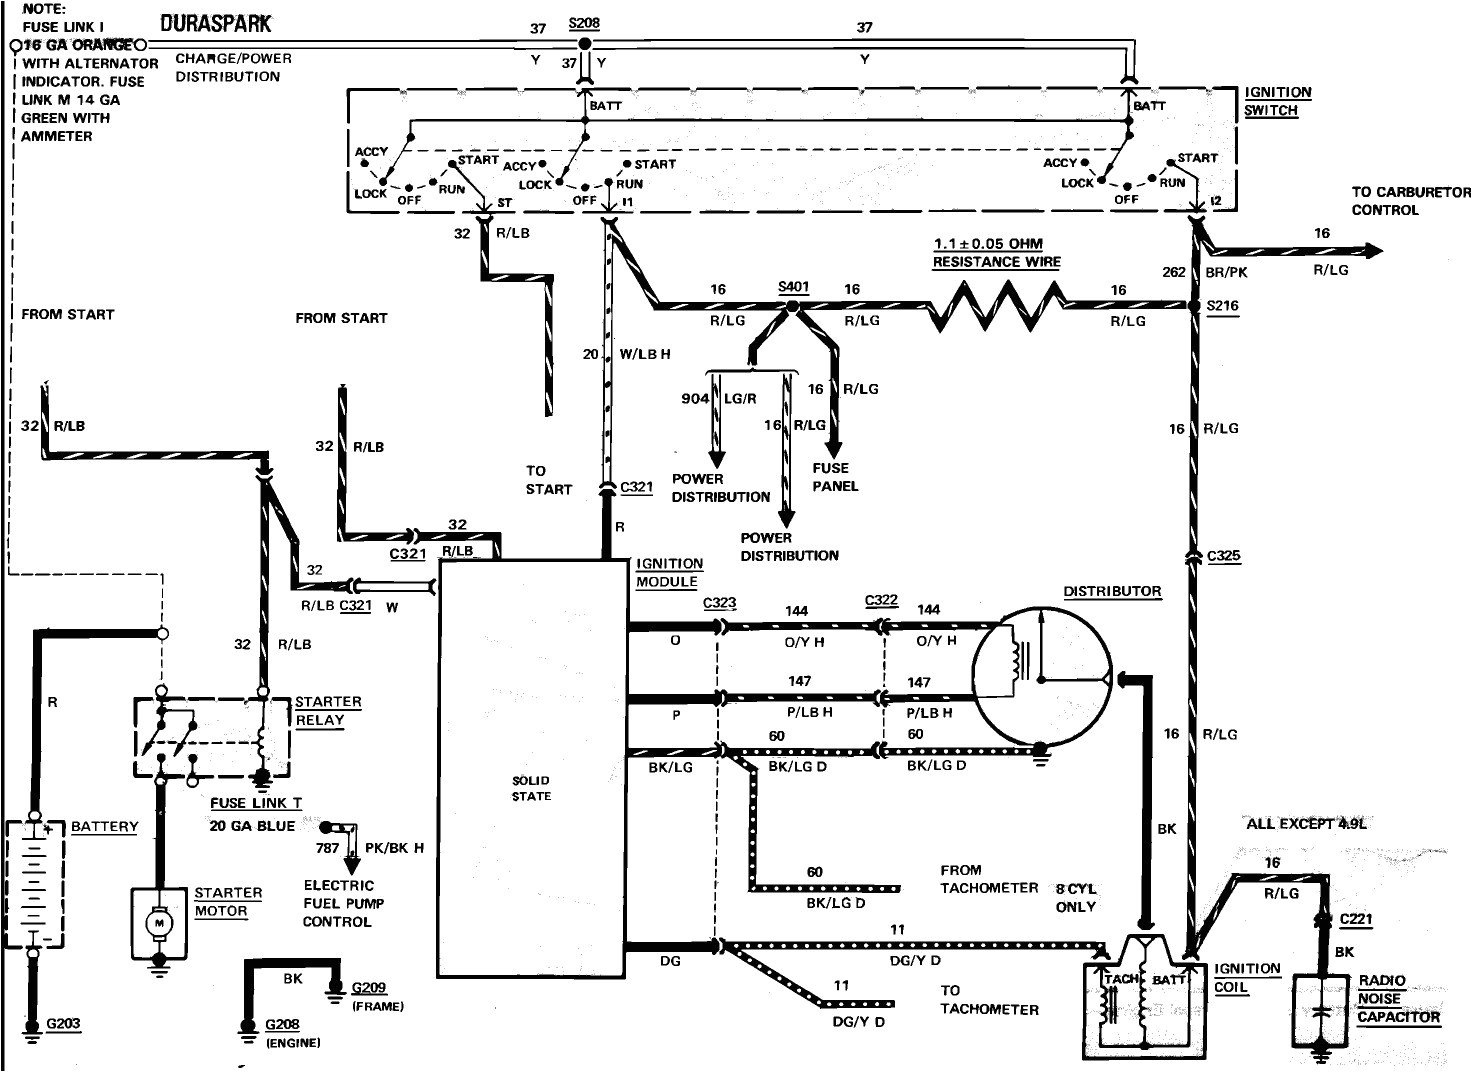 ford f 250 4x4 wiring wiring diagram guide for dummies solenoid schematics for 1975 ford 4x4